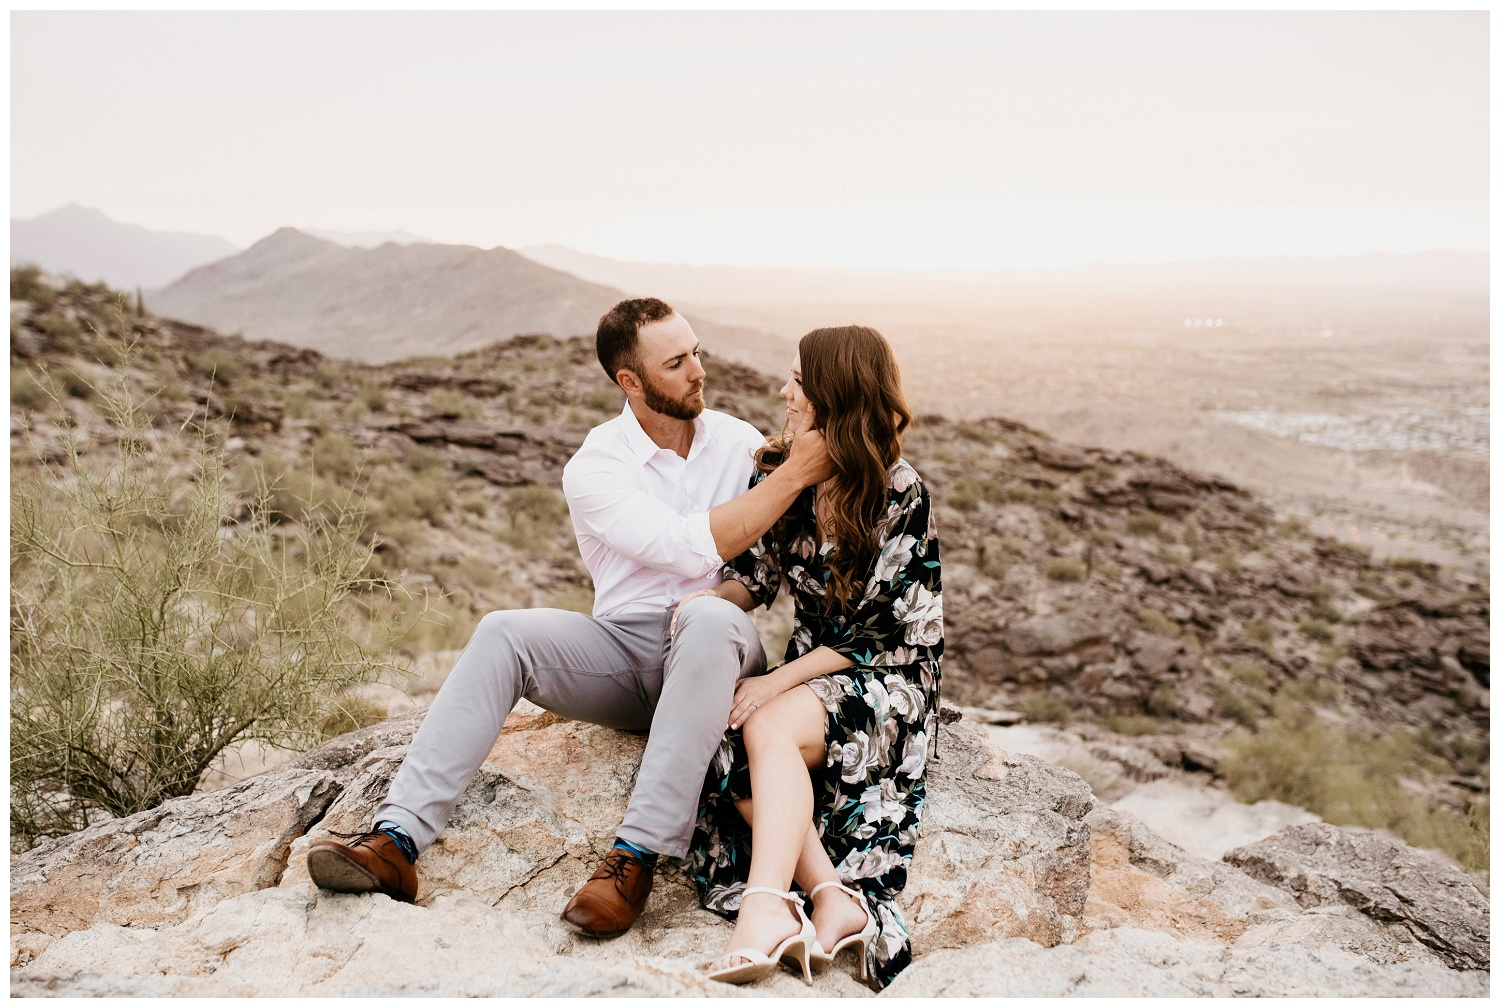 South Mountain Engagement Session Phoenix Wedding Photographer Ashtyn Nicole Photo 16